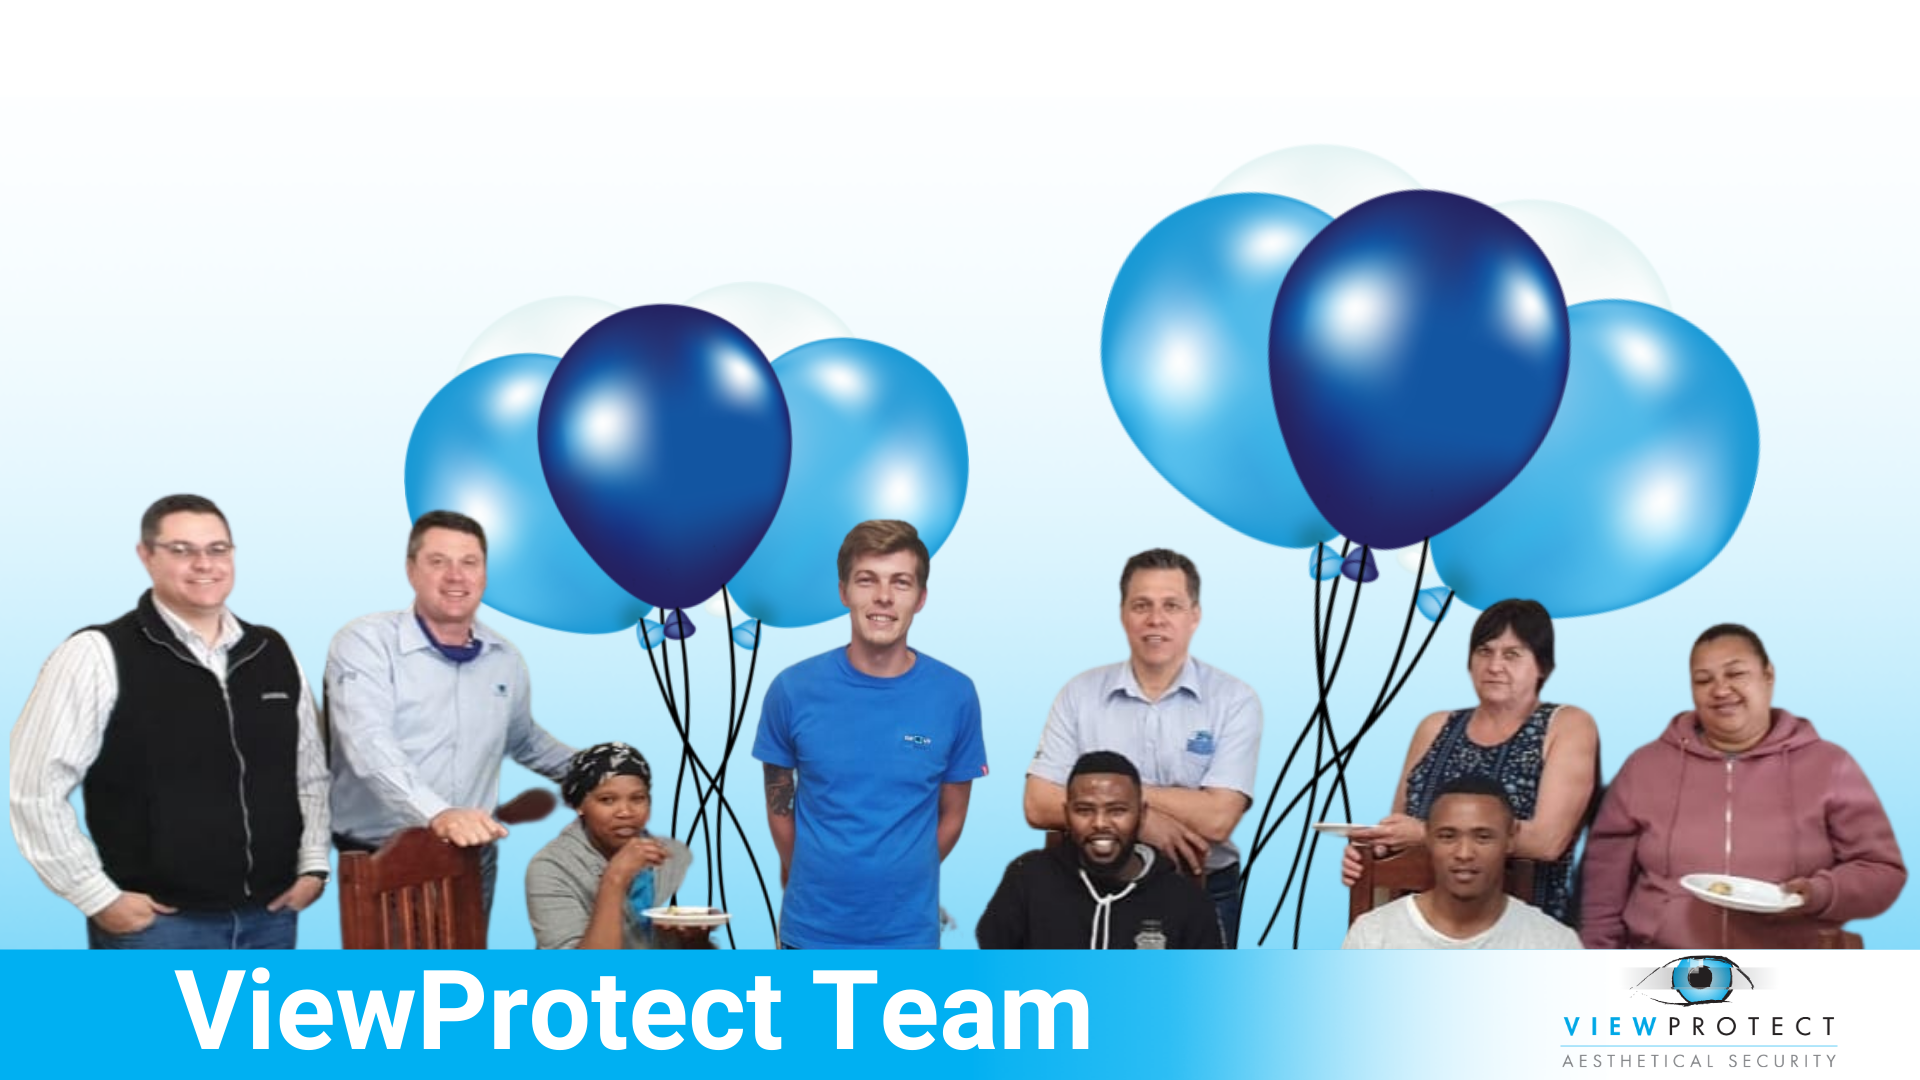 ViewProtect Team 10 years later